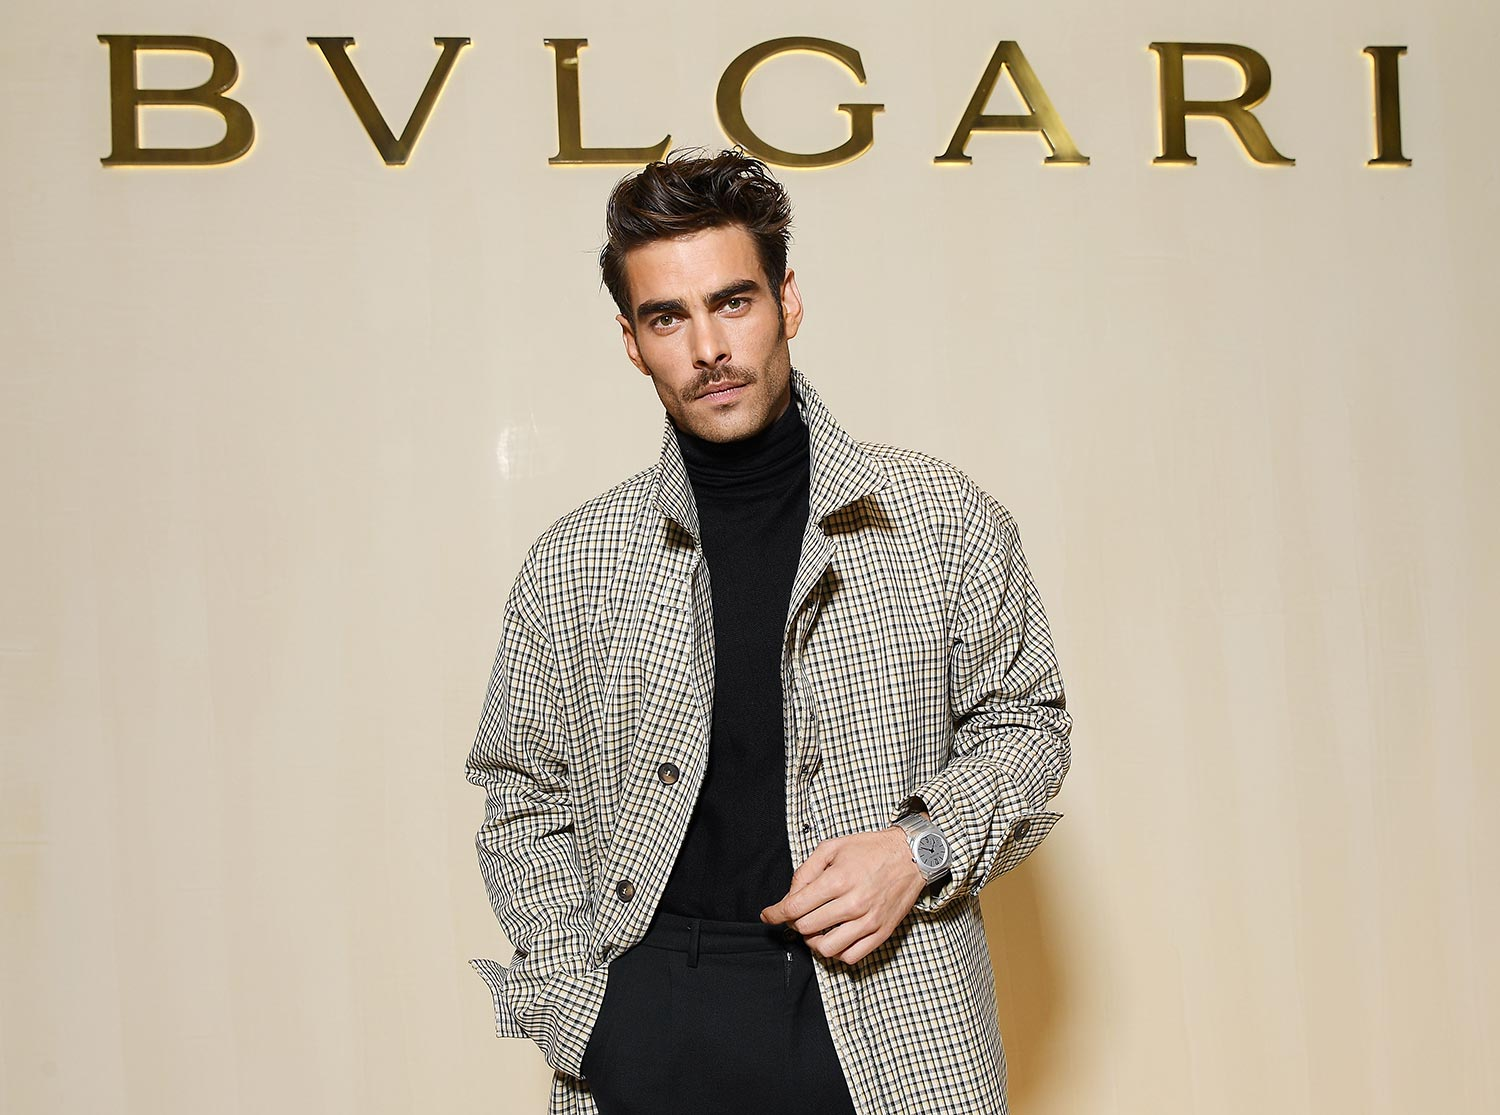 Bulgari Basel Press Party - Jon Kortajarena - Grooming Massimo Serini